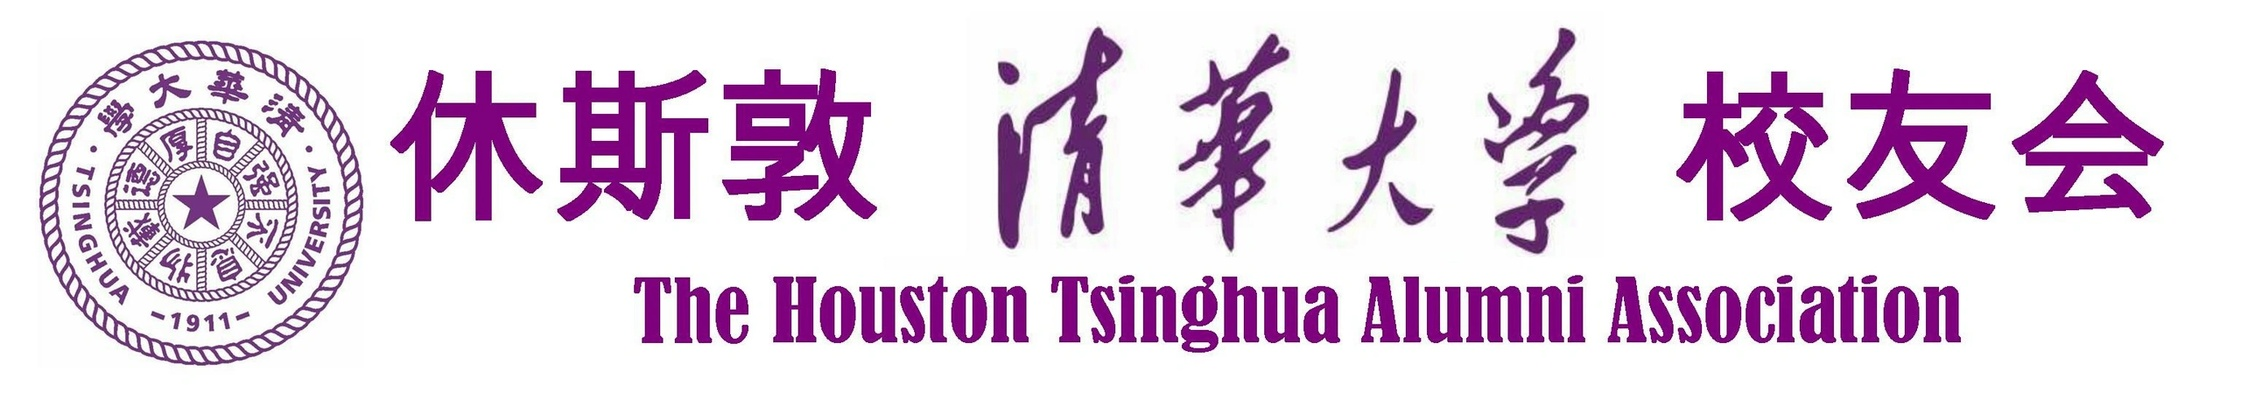 Houston Tsinghua Alumni Association